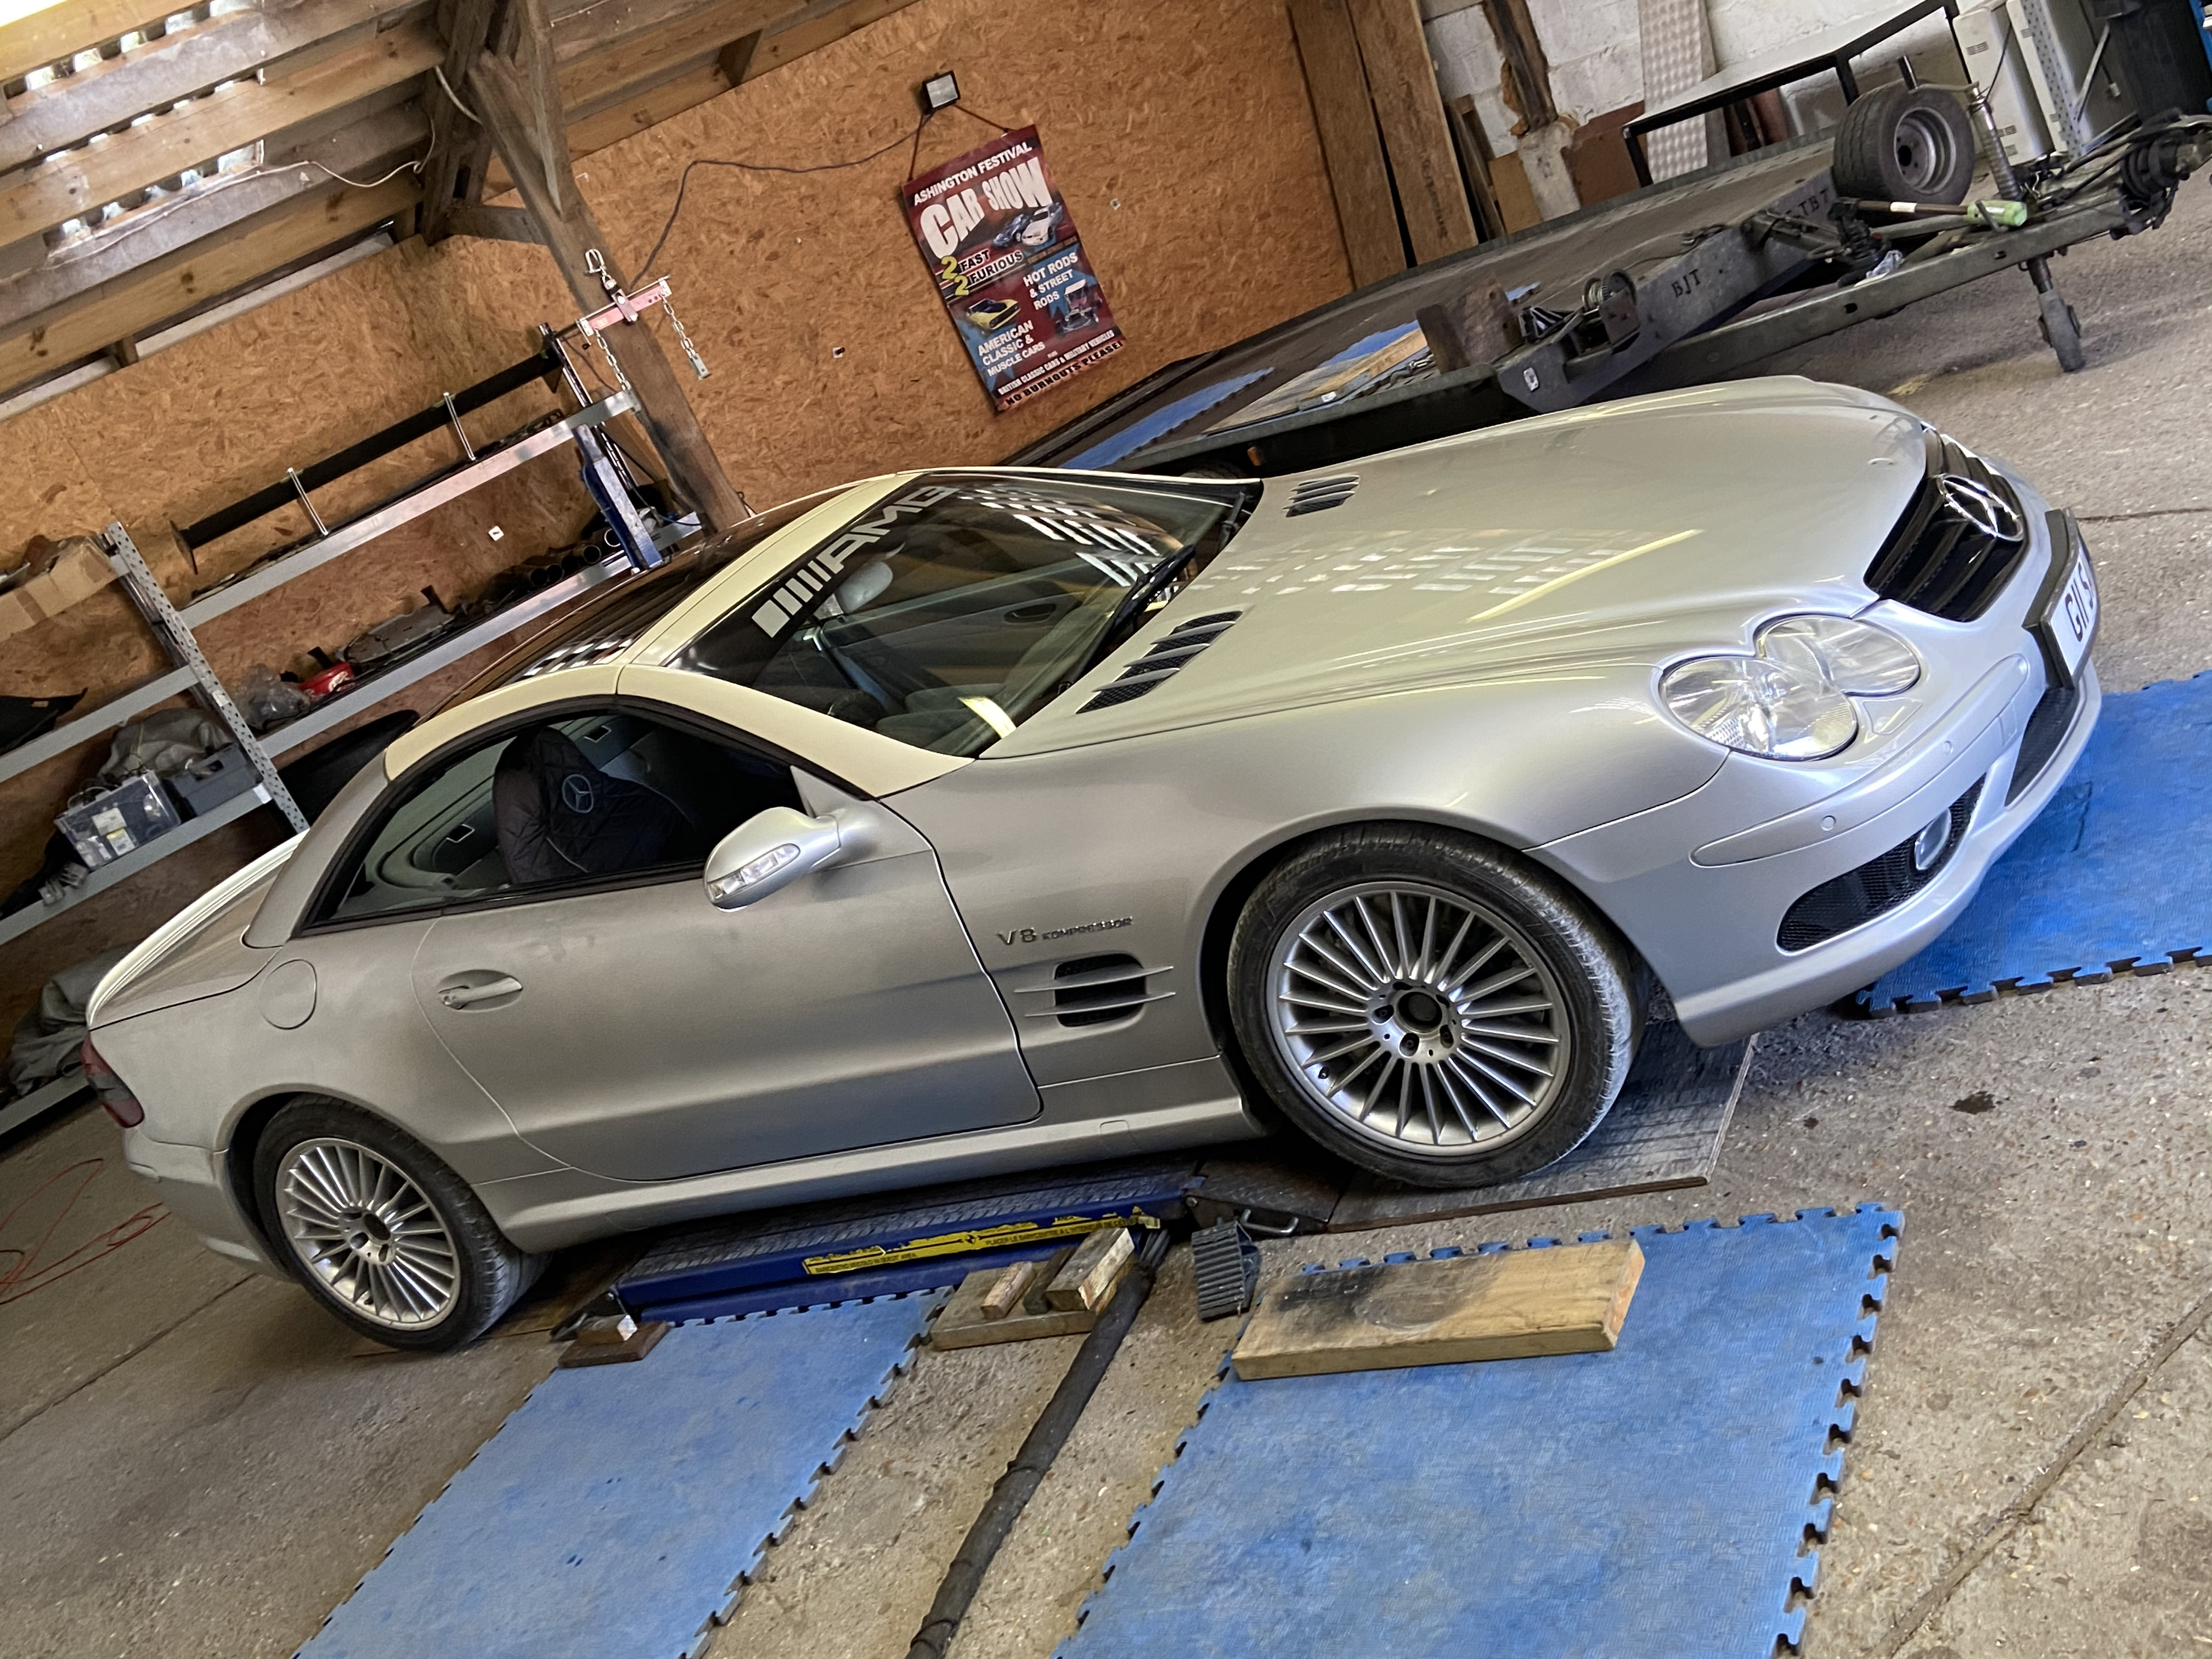 Mercedes Sl 55 amg sprint project unfinished Project